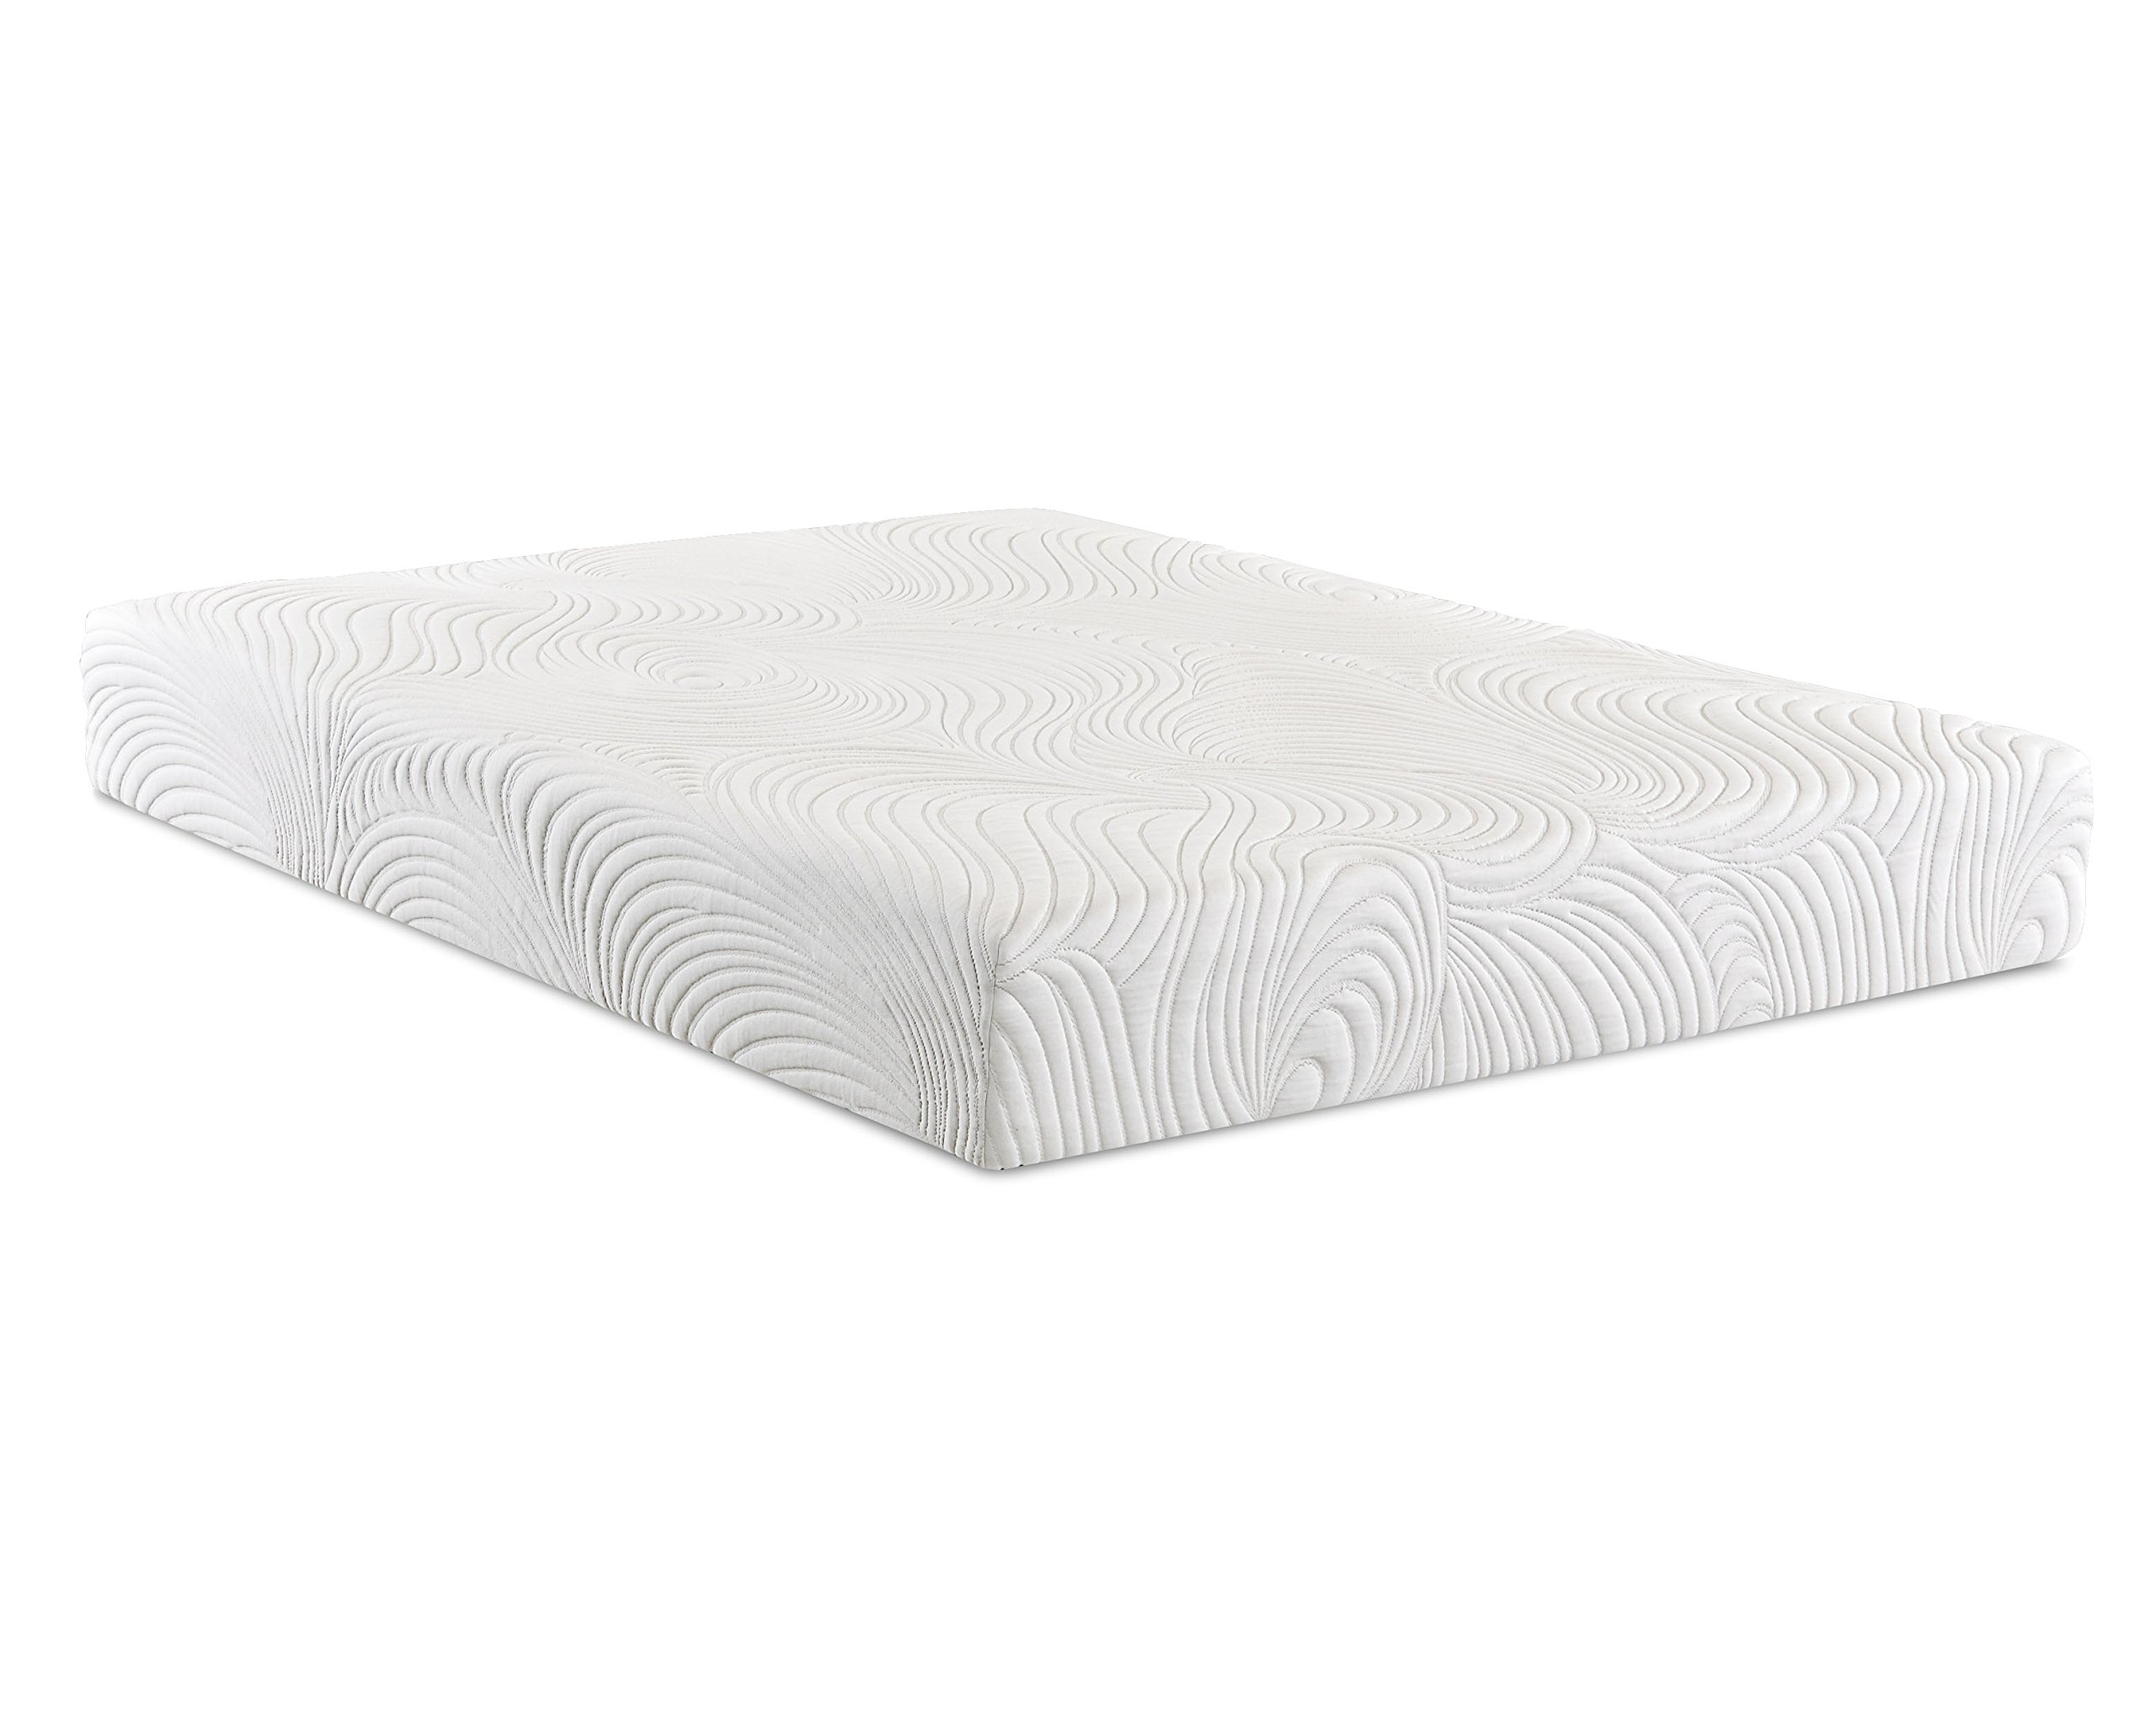 Klaussner Sierra 10'' Puregel Mattress, Full, White